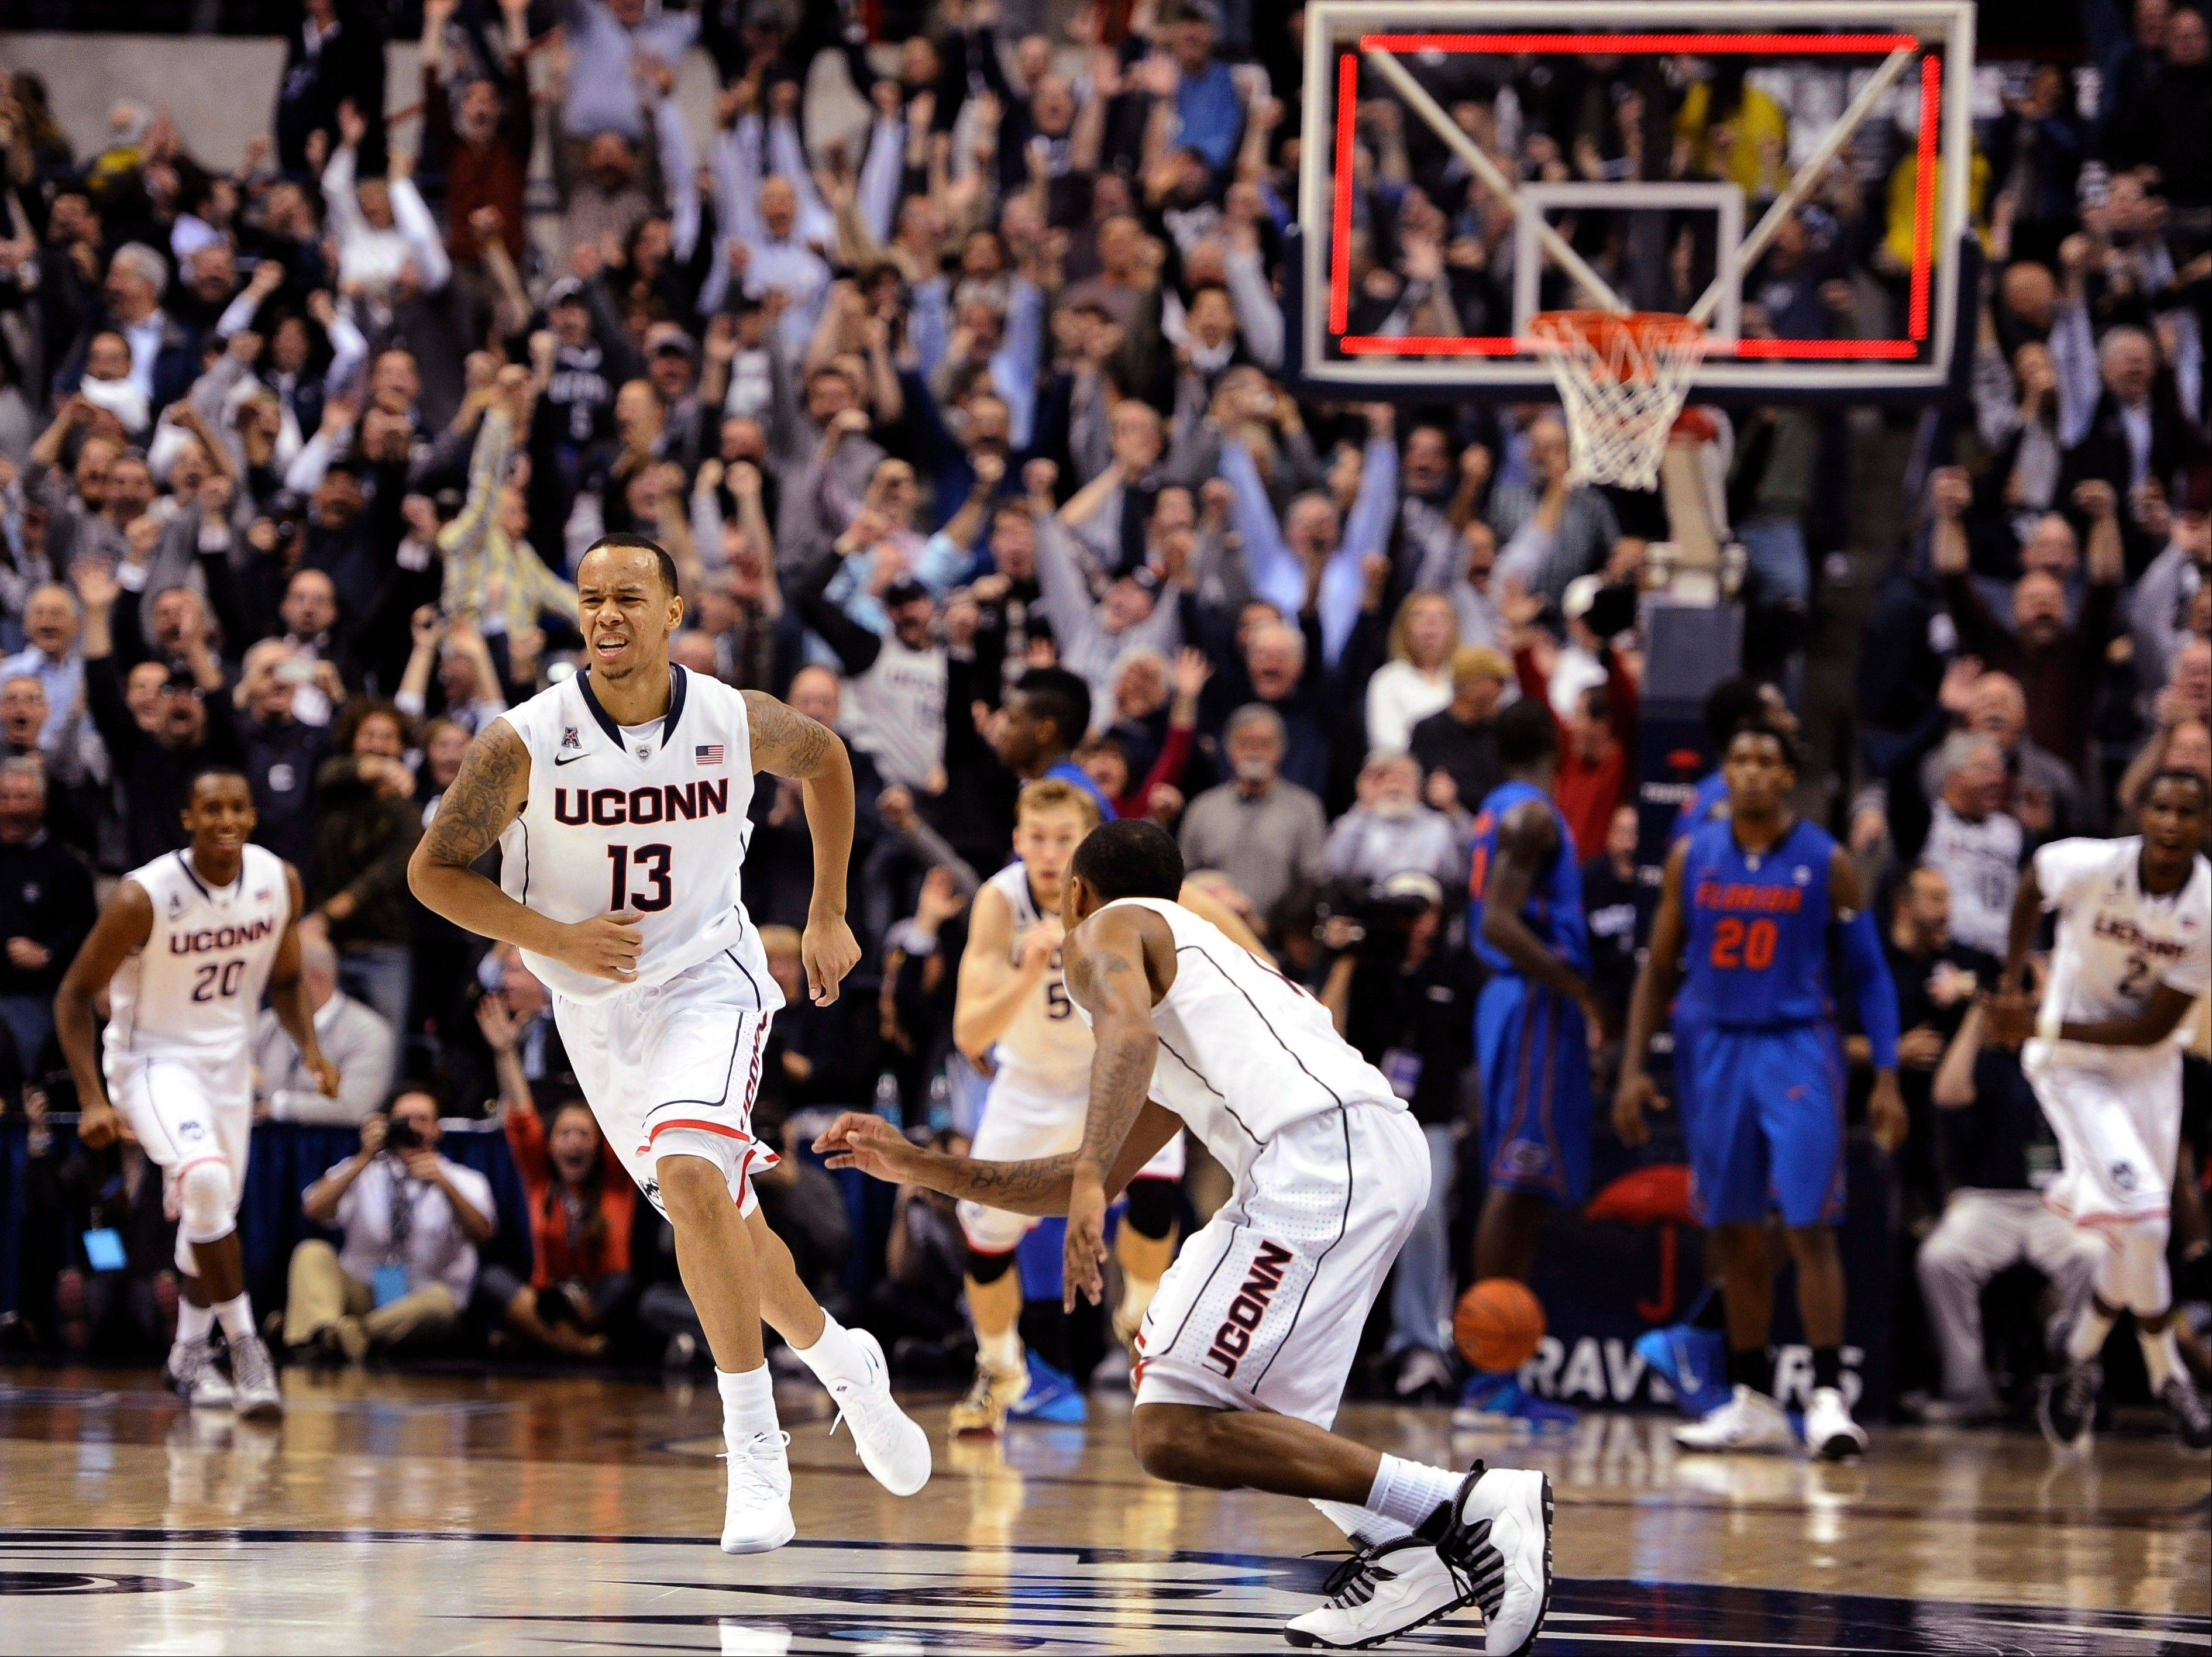 Connecticut�s Shabazz Napier, left, and Ryan Boatright, right, react after Napier hits the game winning basket at the end an NCAA college basketball game Monday against Florida in Storrs, Conn. Connecticut won 65-64.